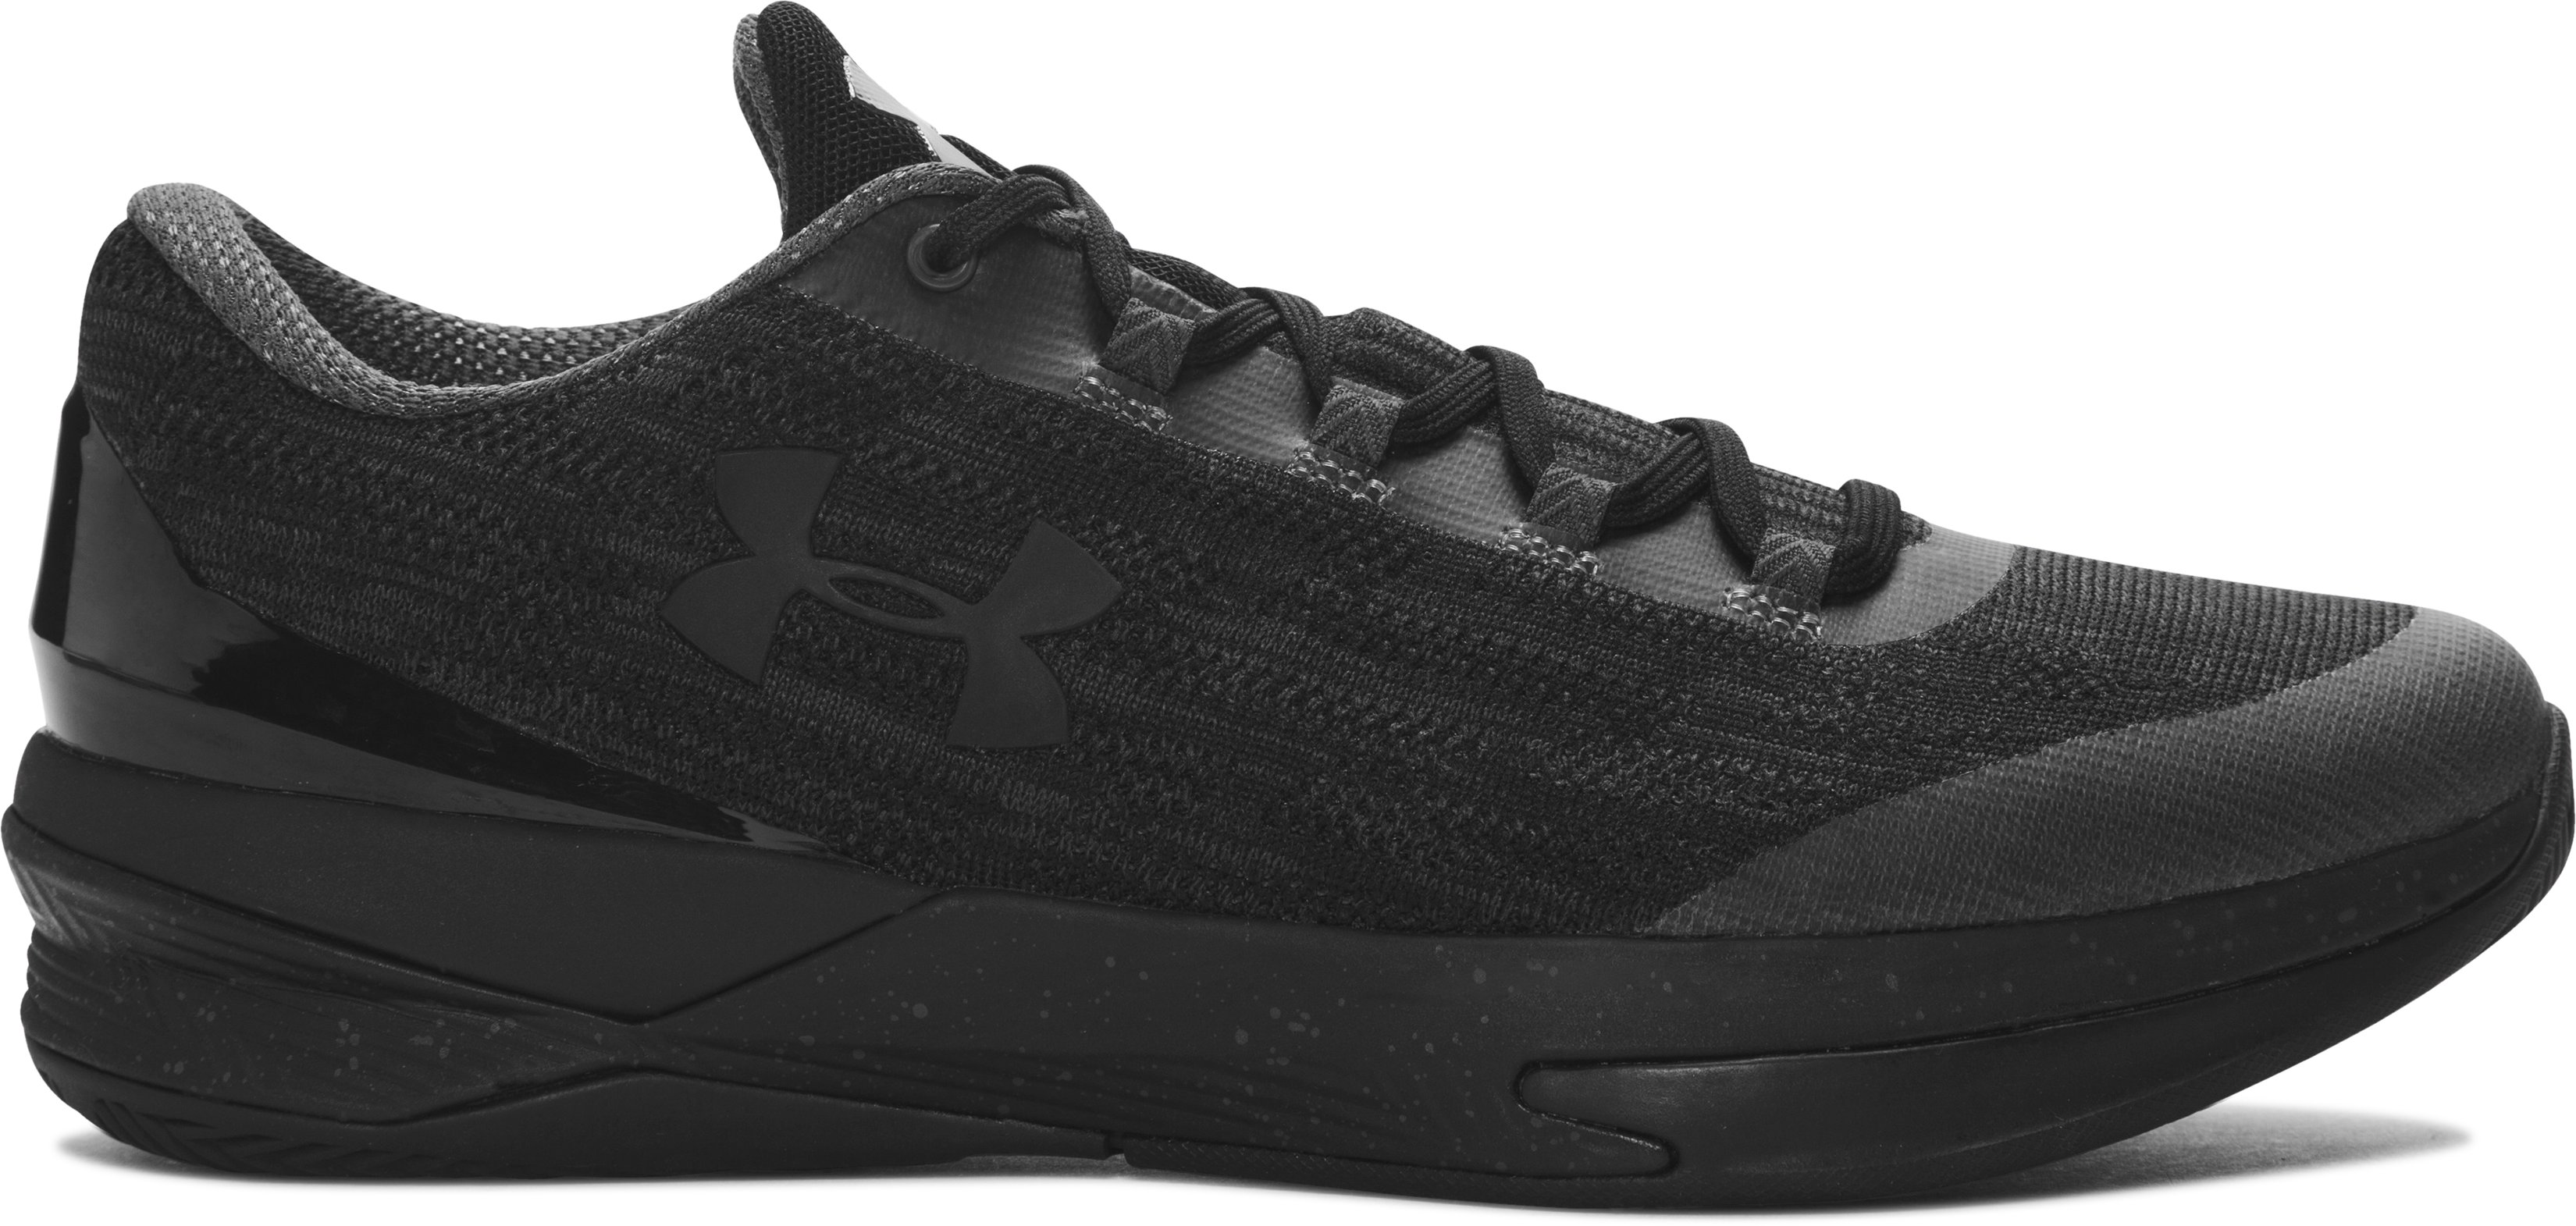 Men's UA Charged Controller Basketball Shoes, Black